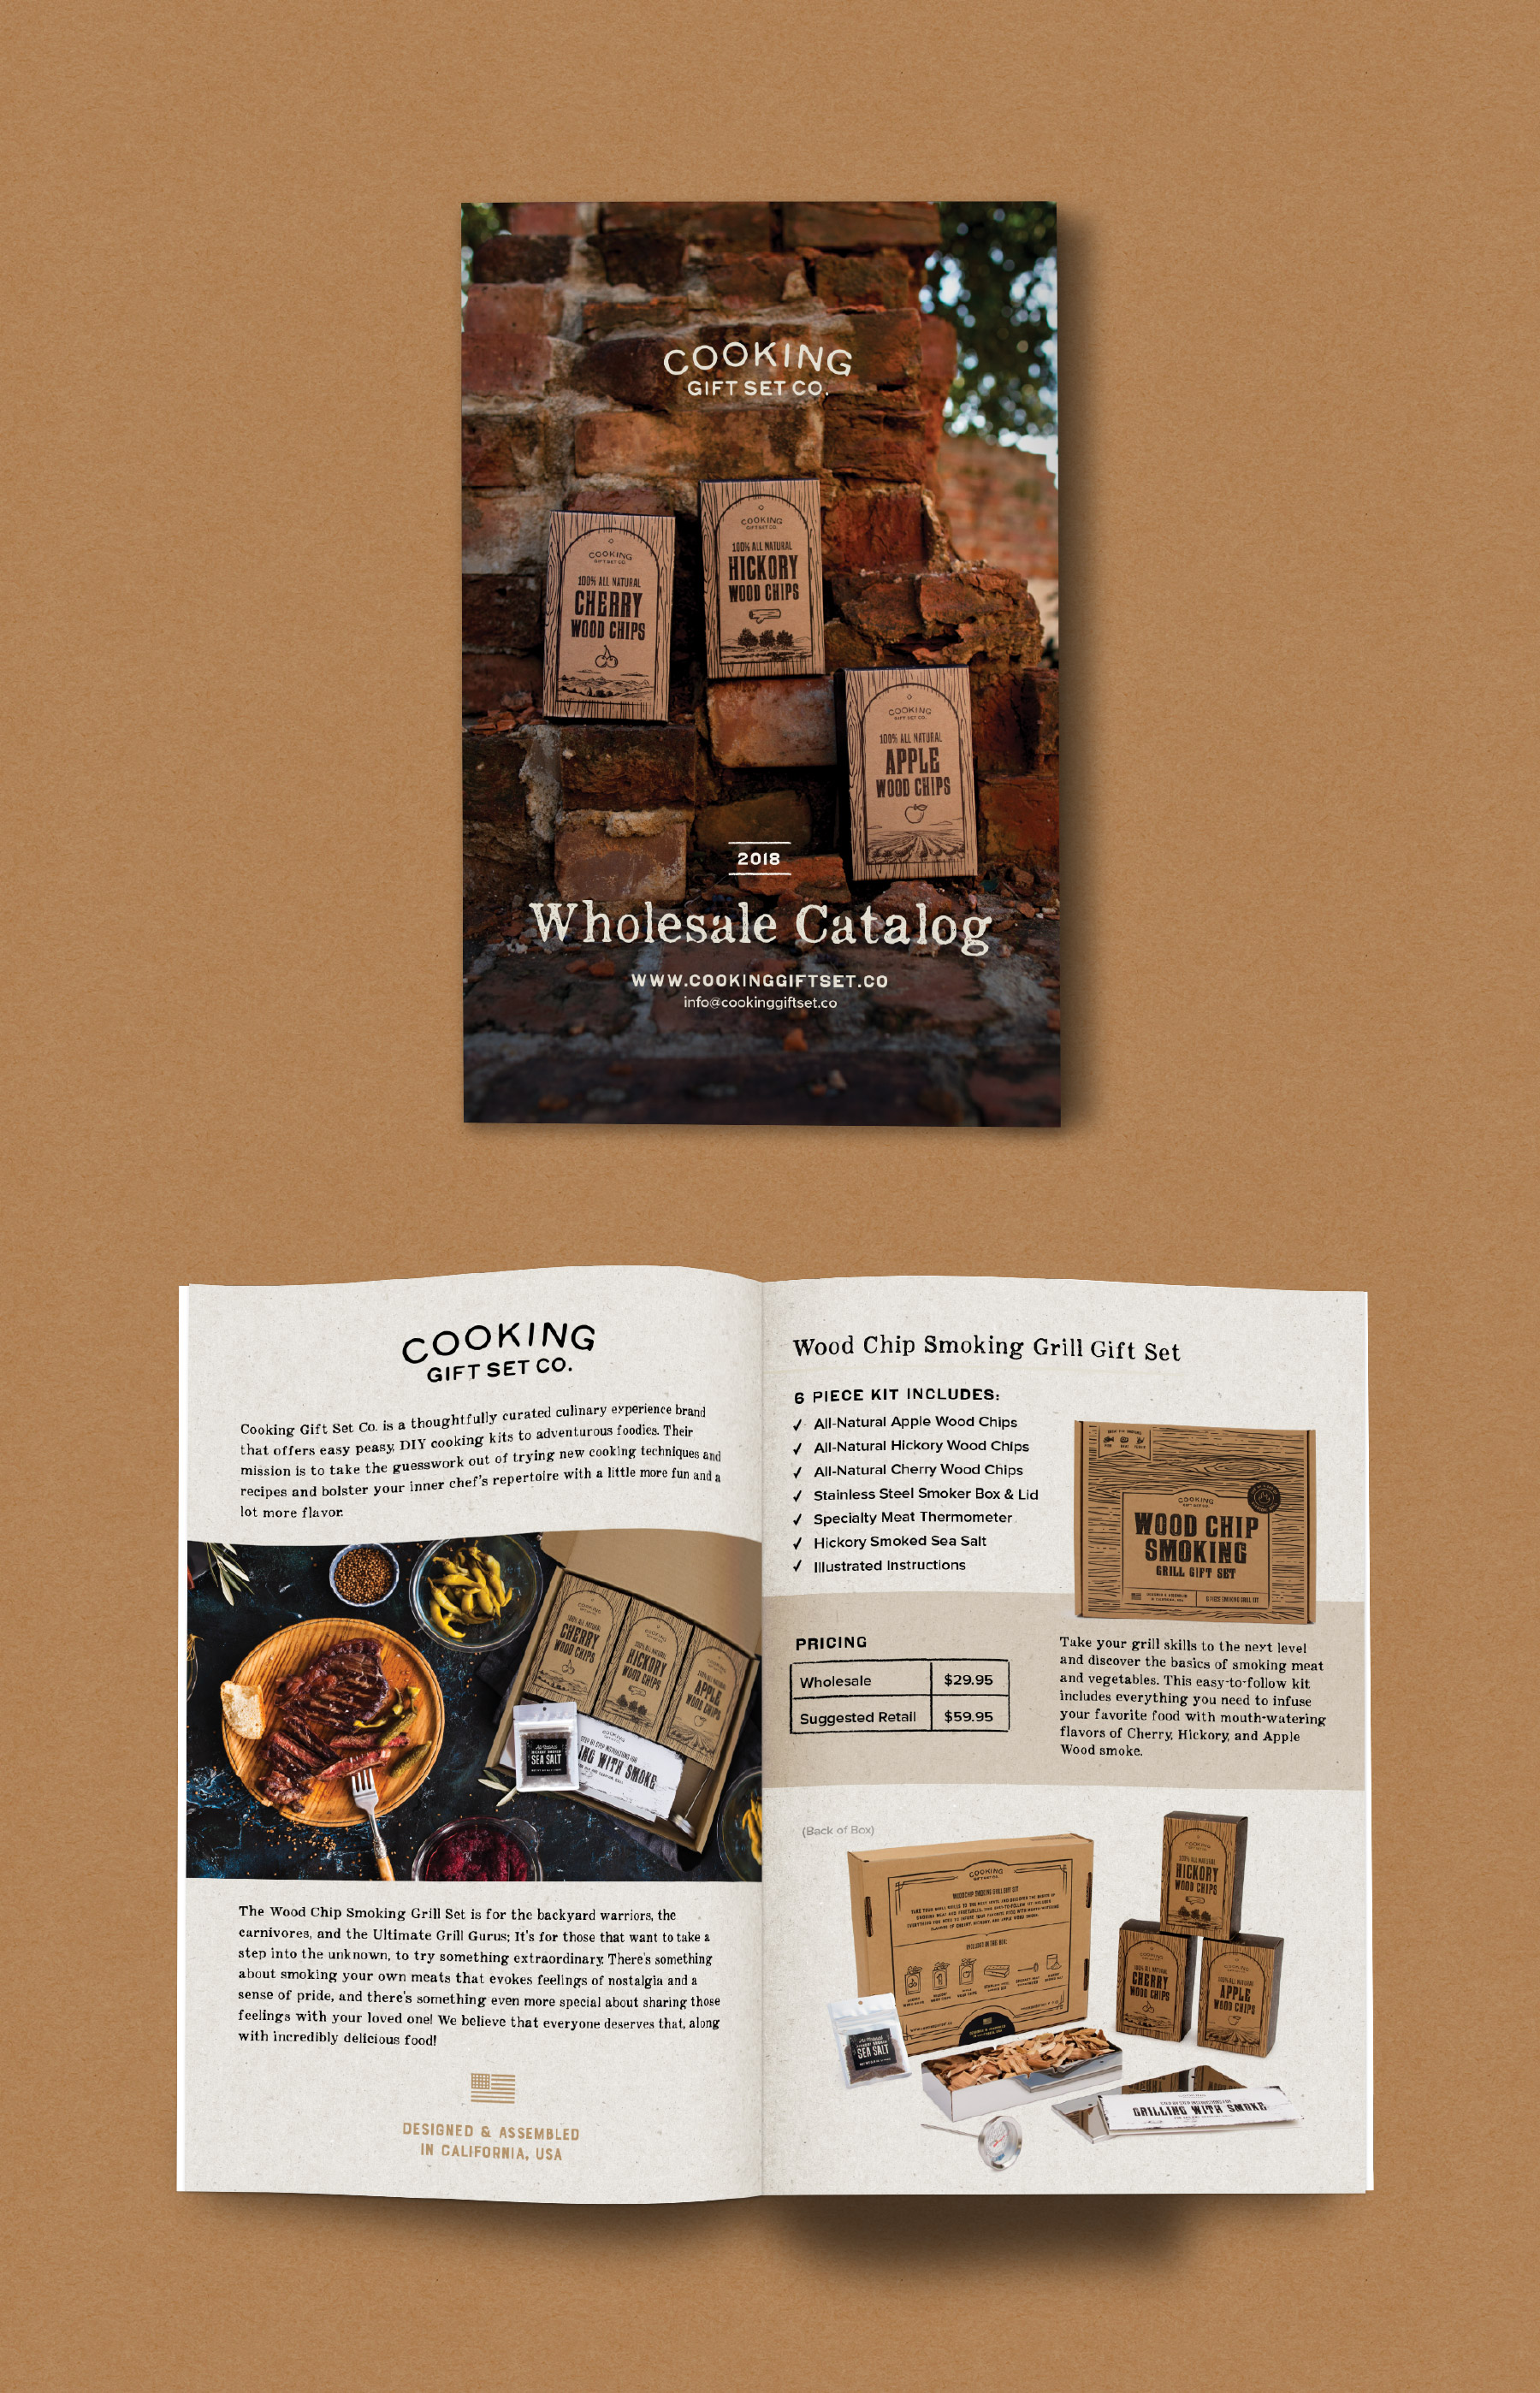 wholesale catalog cover, about page, and pricing information